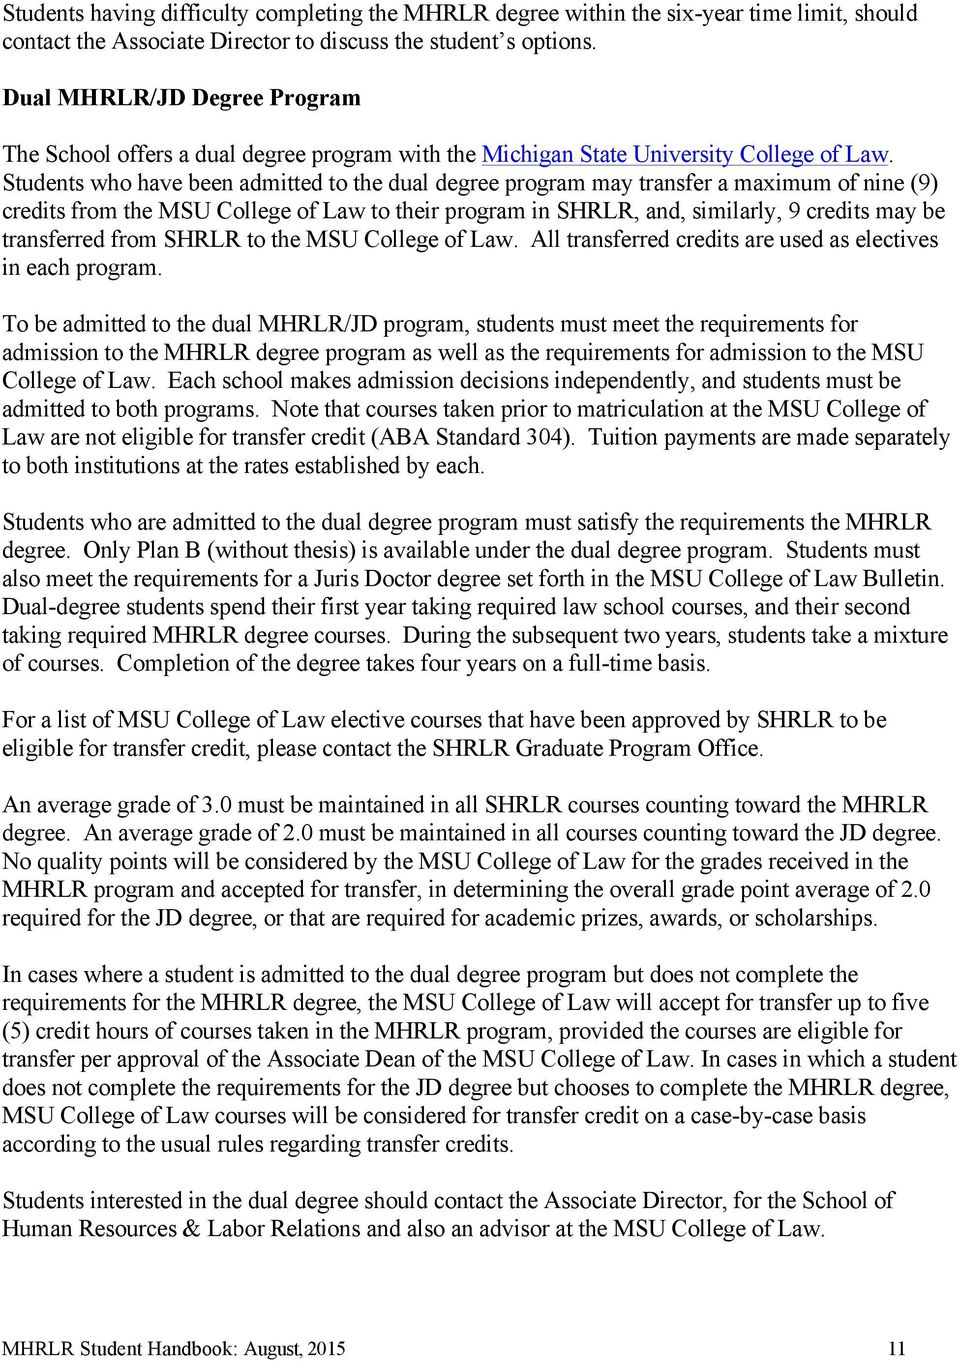 Students who have been admitted to the dual degree program may transfer a maximum of nine (9) credits from the MSU College of Law to their program in SHRLR, and, similarly, 9 credits may be